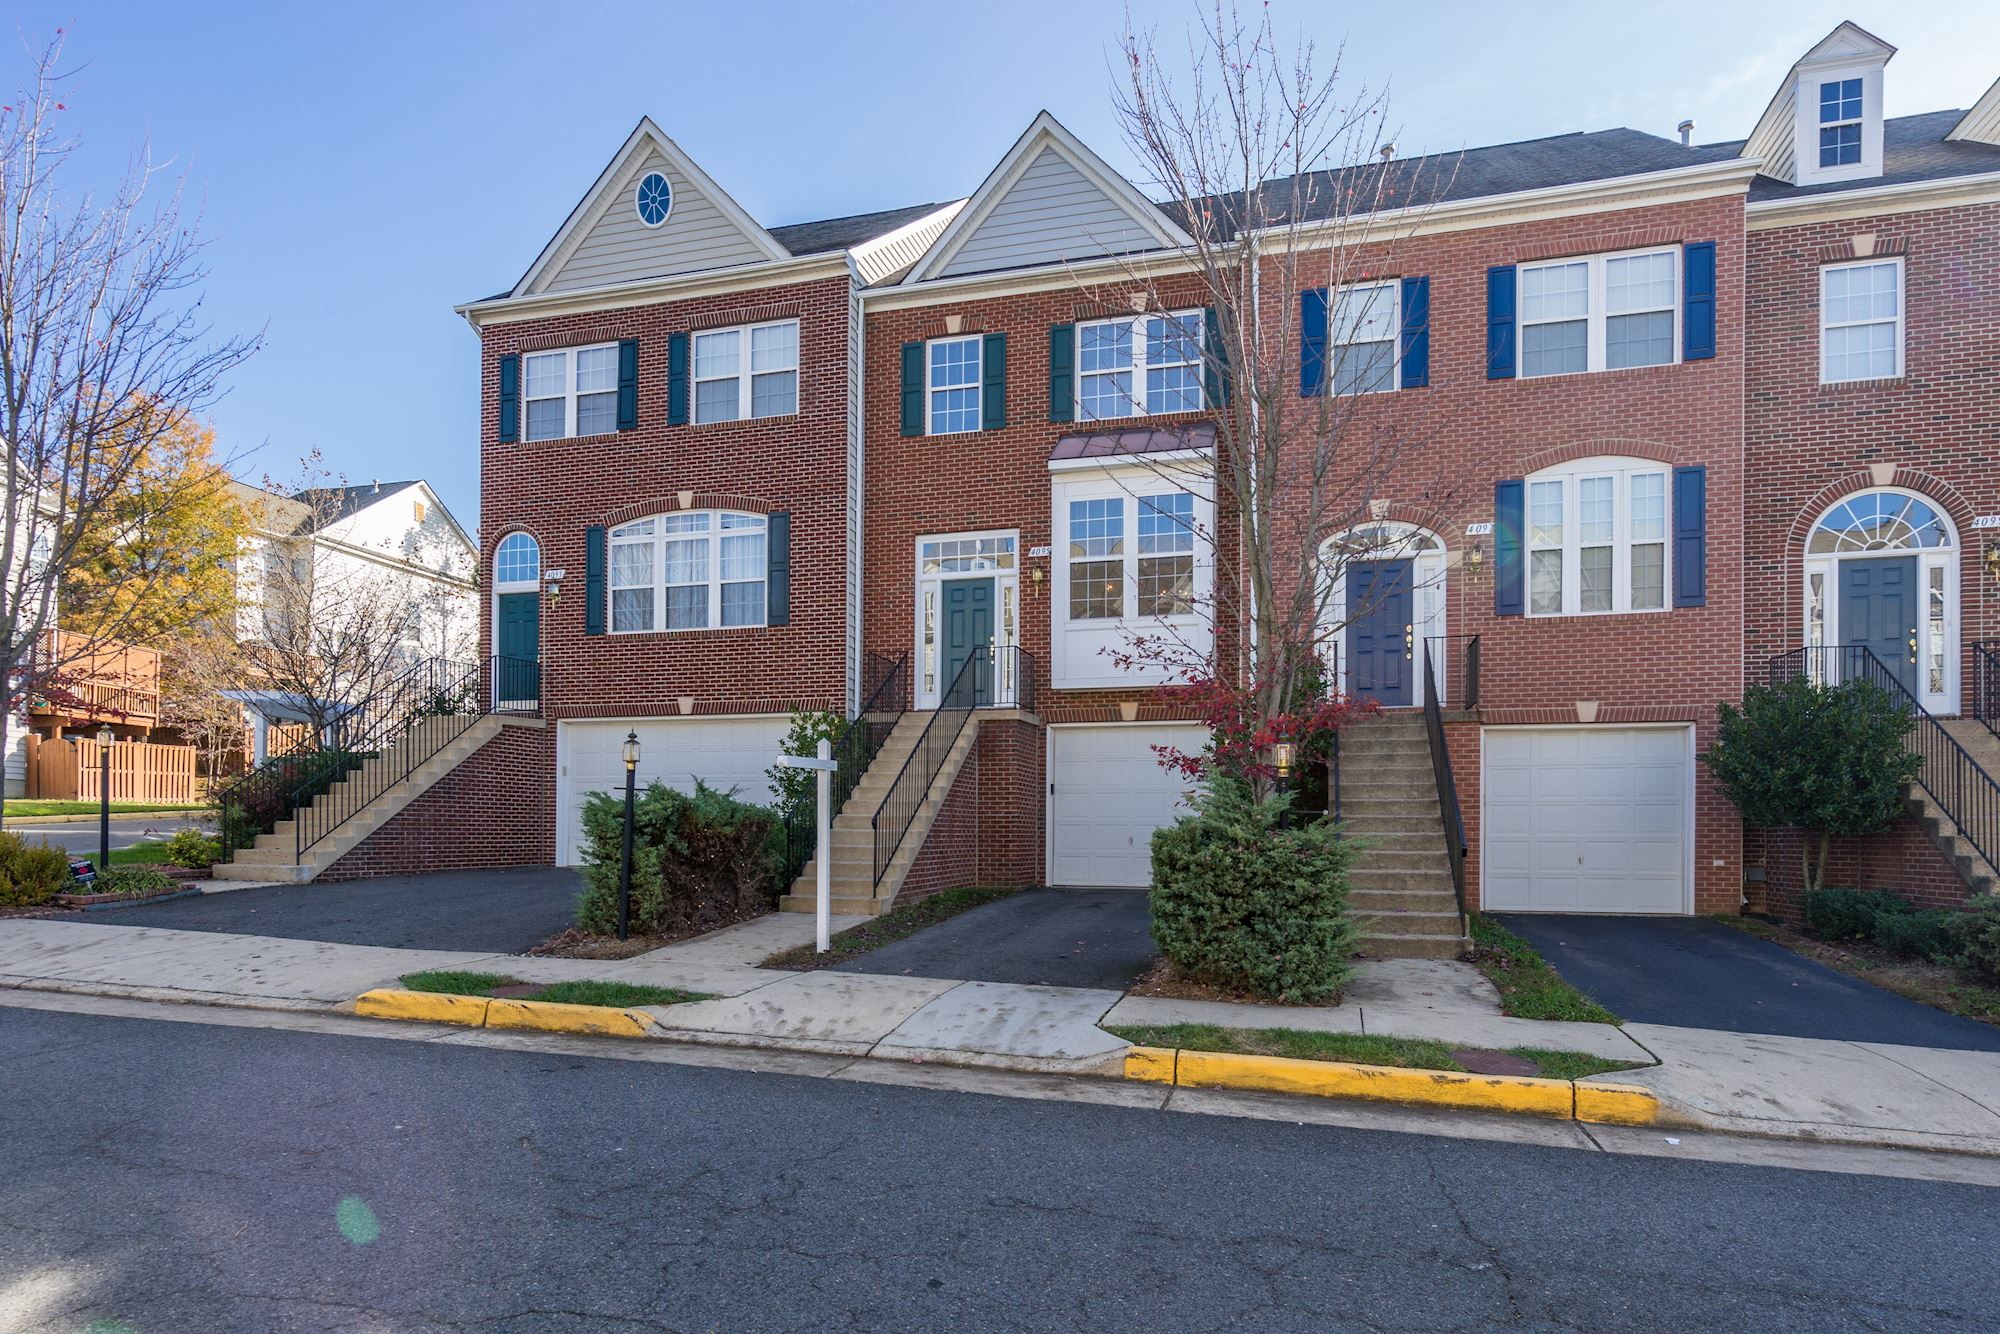 NEW LISTING: Brick, Single Family Townhouse in Fairfax